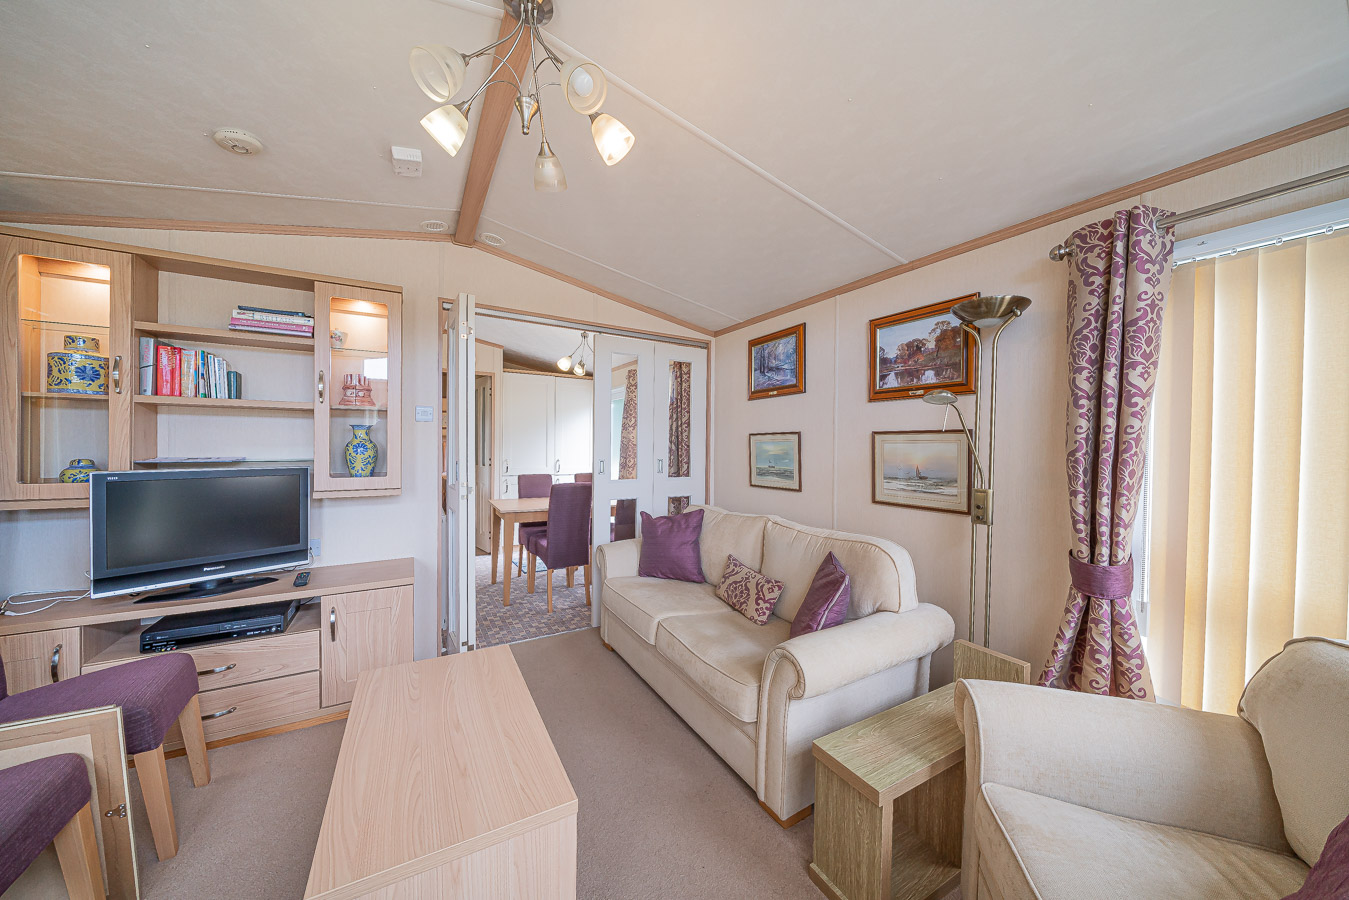 Monkton-Wyld-Static-Mobile-Holiday-Home-Sale-Plot-8-Charmouth-Lyme-Regis-West-Dorset-3